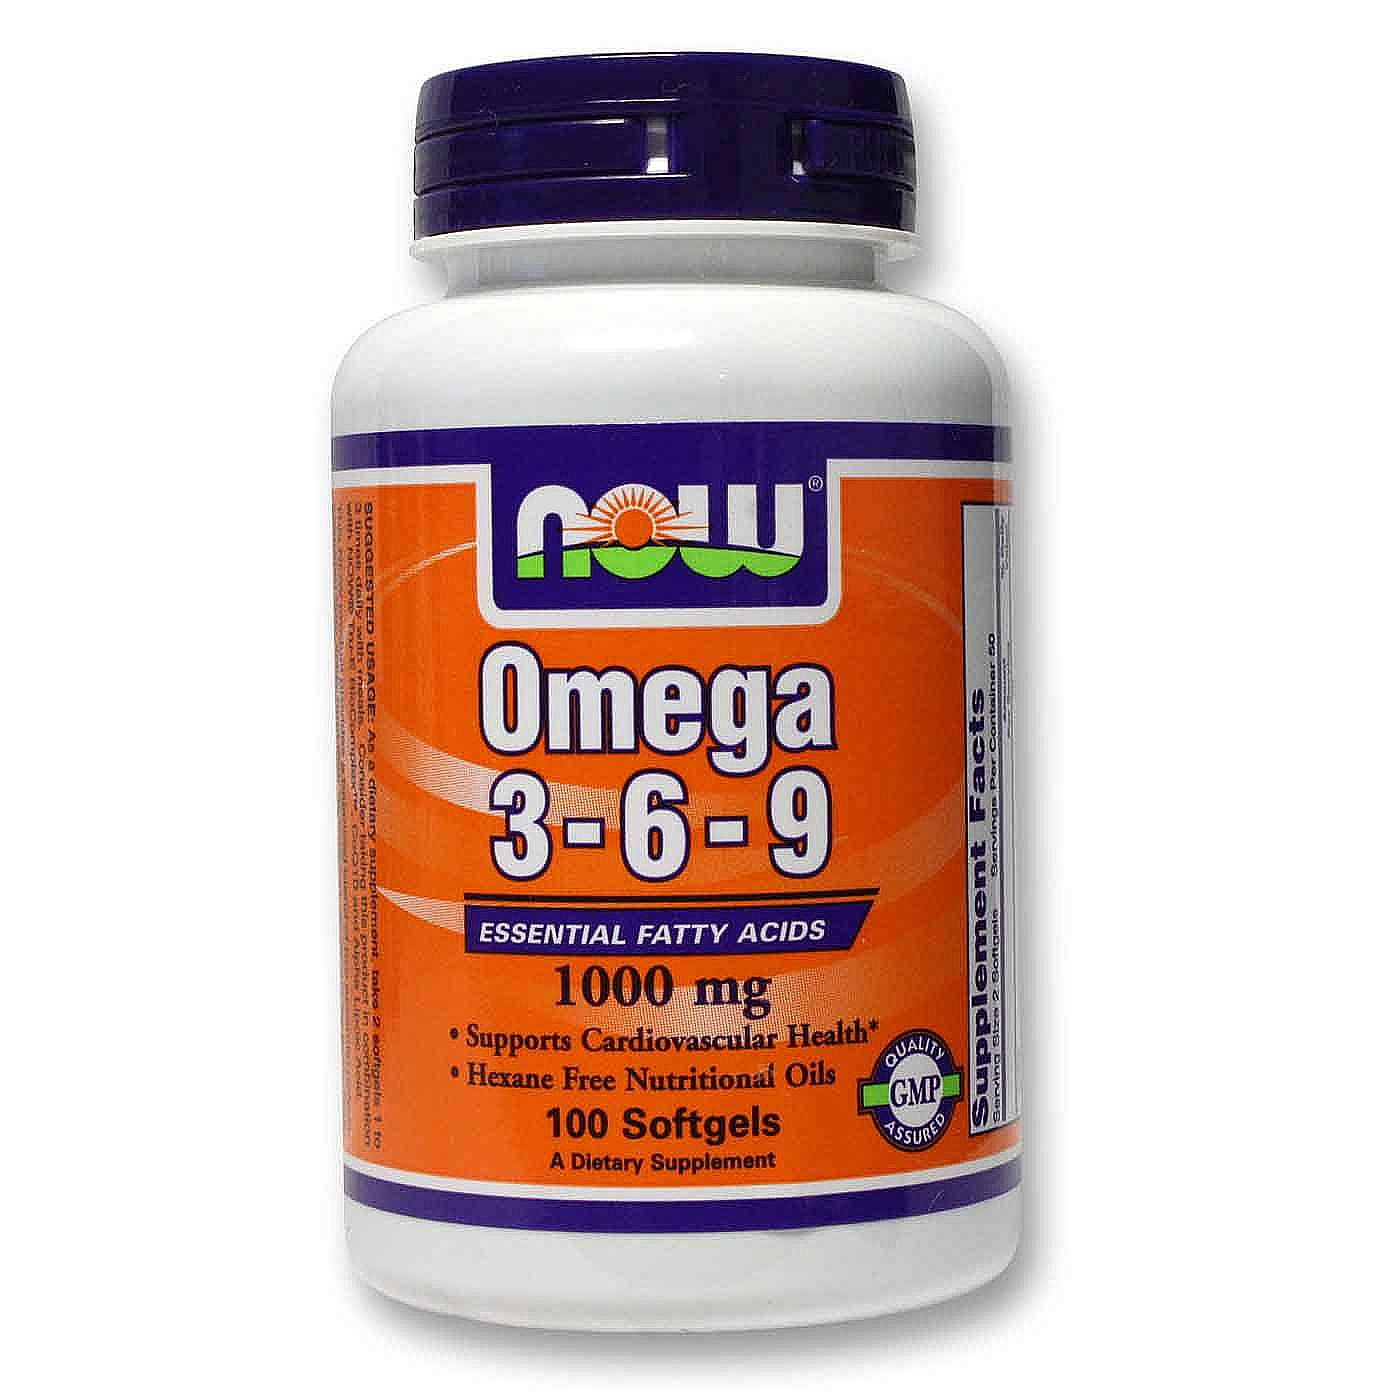 Omega 3 6 9 And Gout Omega3 Antioch